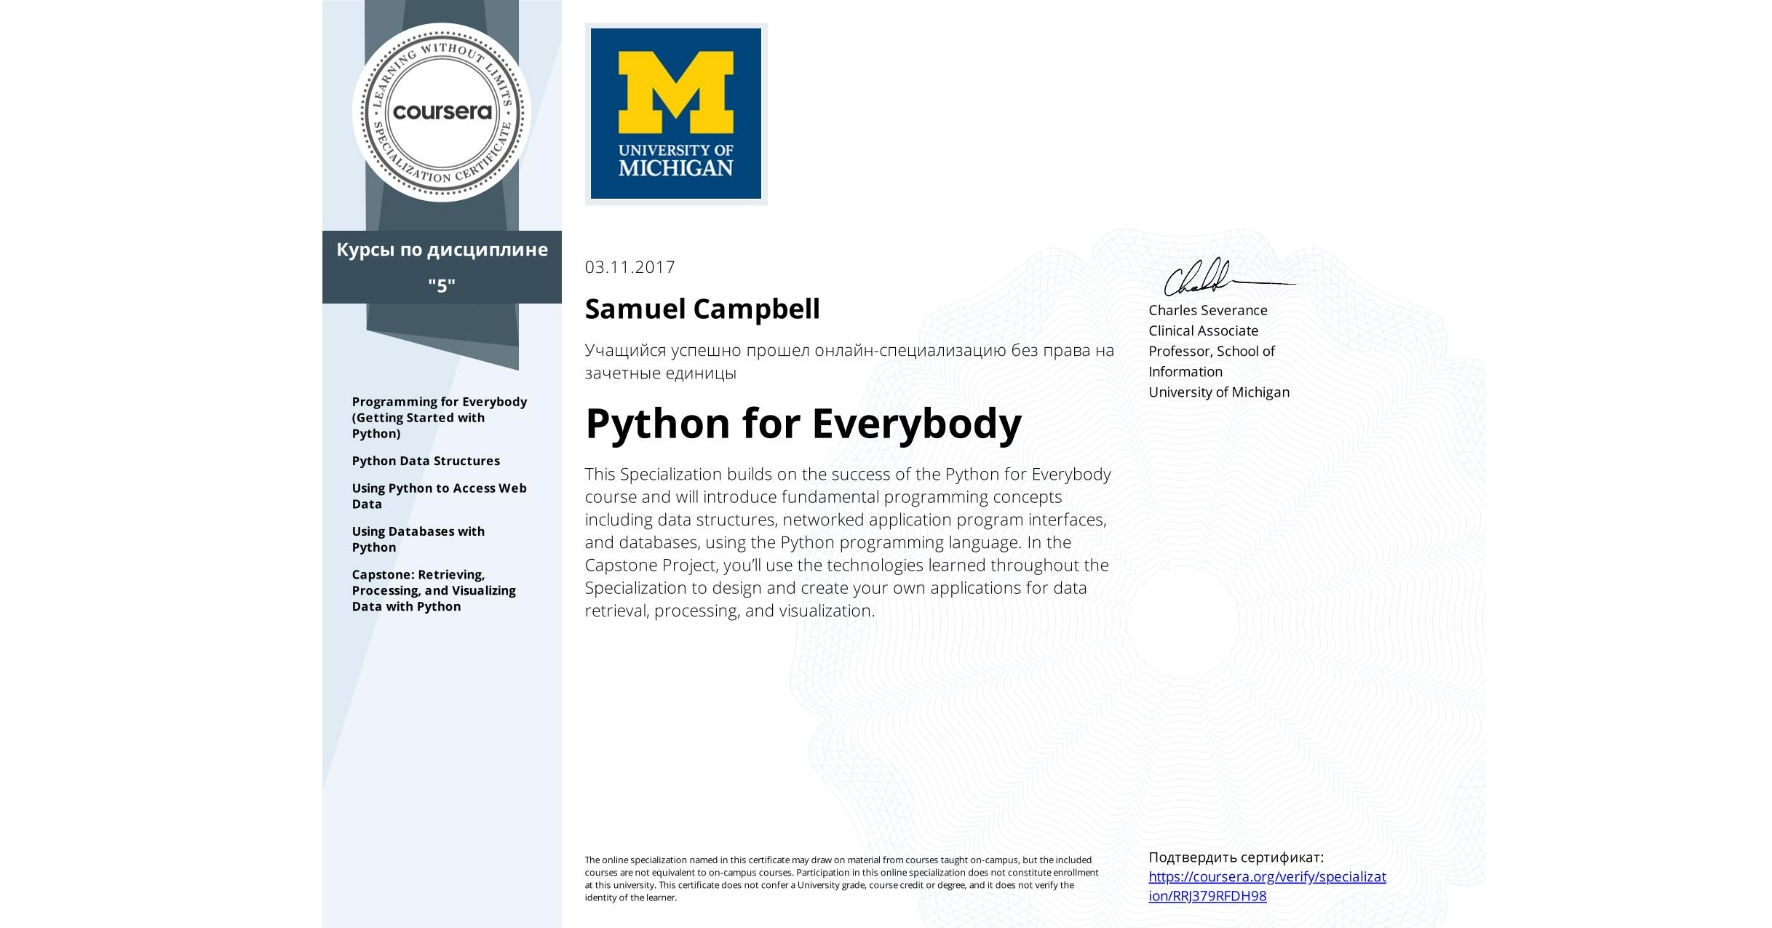 View certificate for Samuel Campbell , Python for Everybody, offered through Coursera. This Specialization builds on the success of the Python for Everybody course and will introduce fundamental programming concepts including data structures, networked application program interfaces, and databases, using the Python programming language. In the Capstone Project, you'll use the technologies learned throughout the Specialization to design and create your own applications for data retrieval, processing, and visualization.